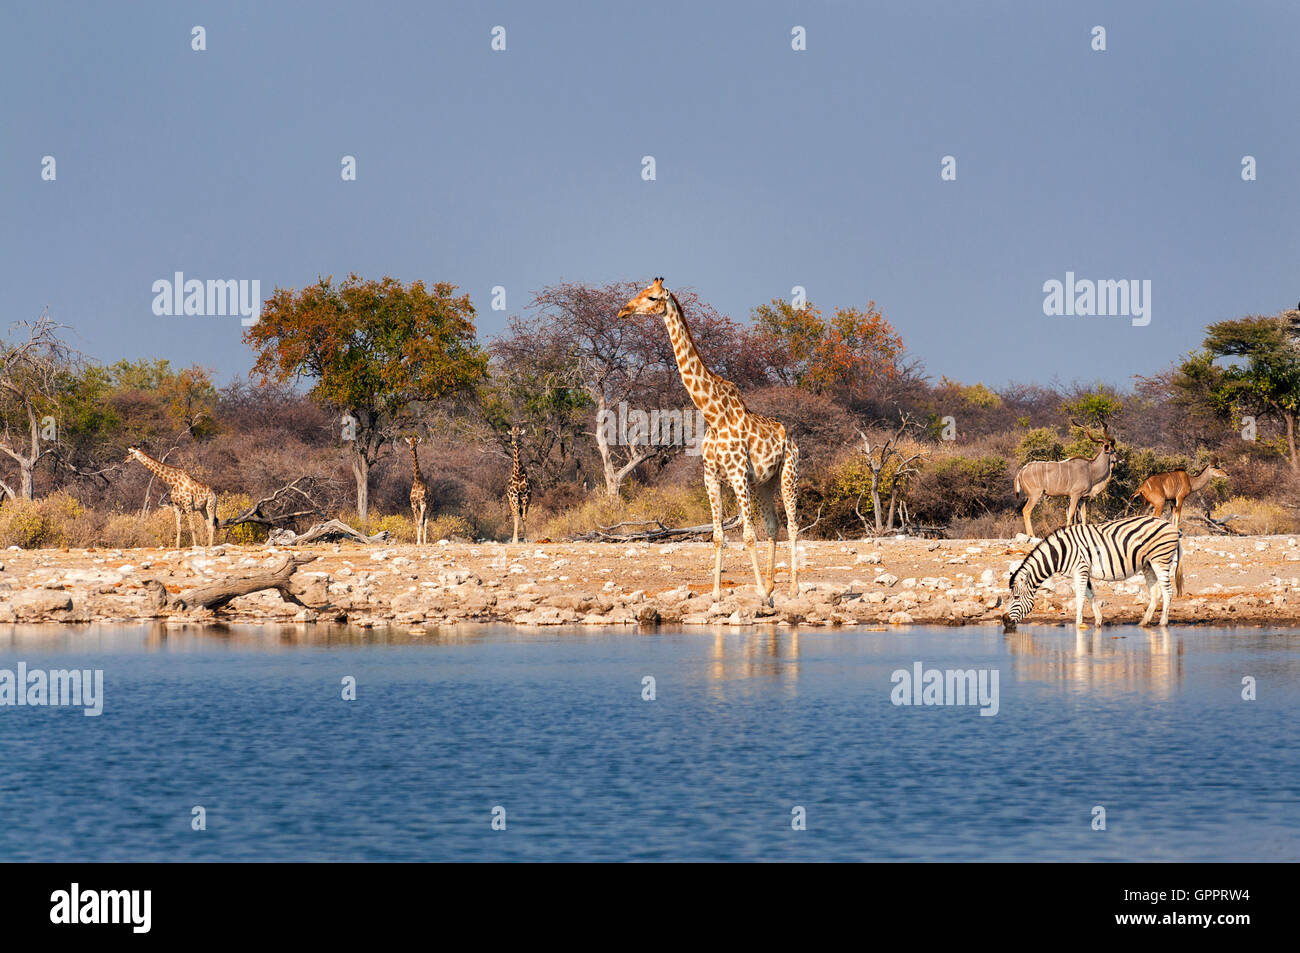 Group of wild animals near a waterhole in the Etosha National Park, in Namibia; Concept for travel in Africa and Stock Photo